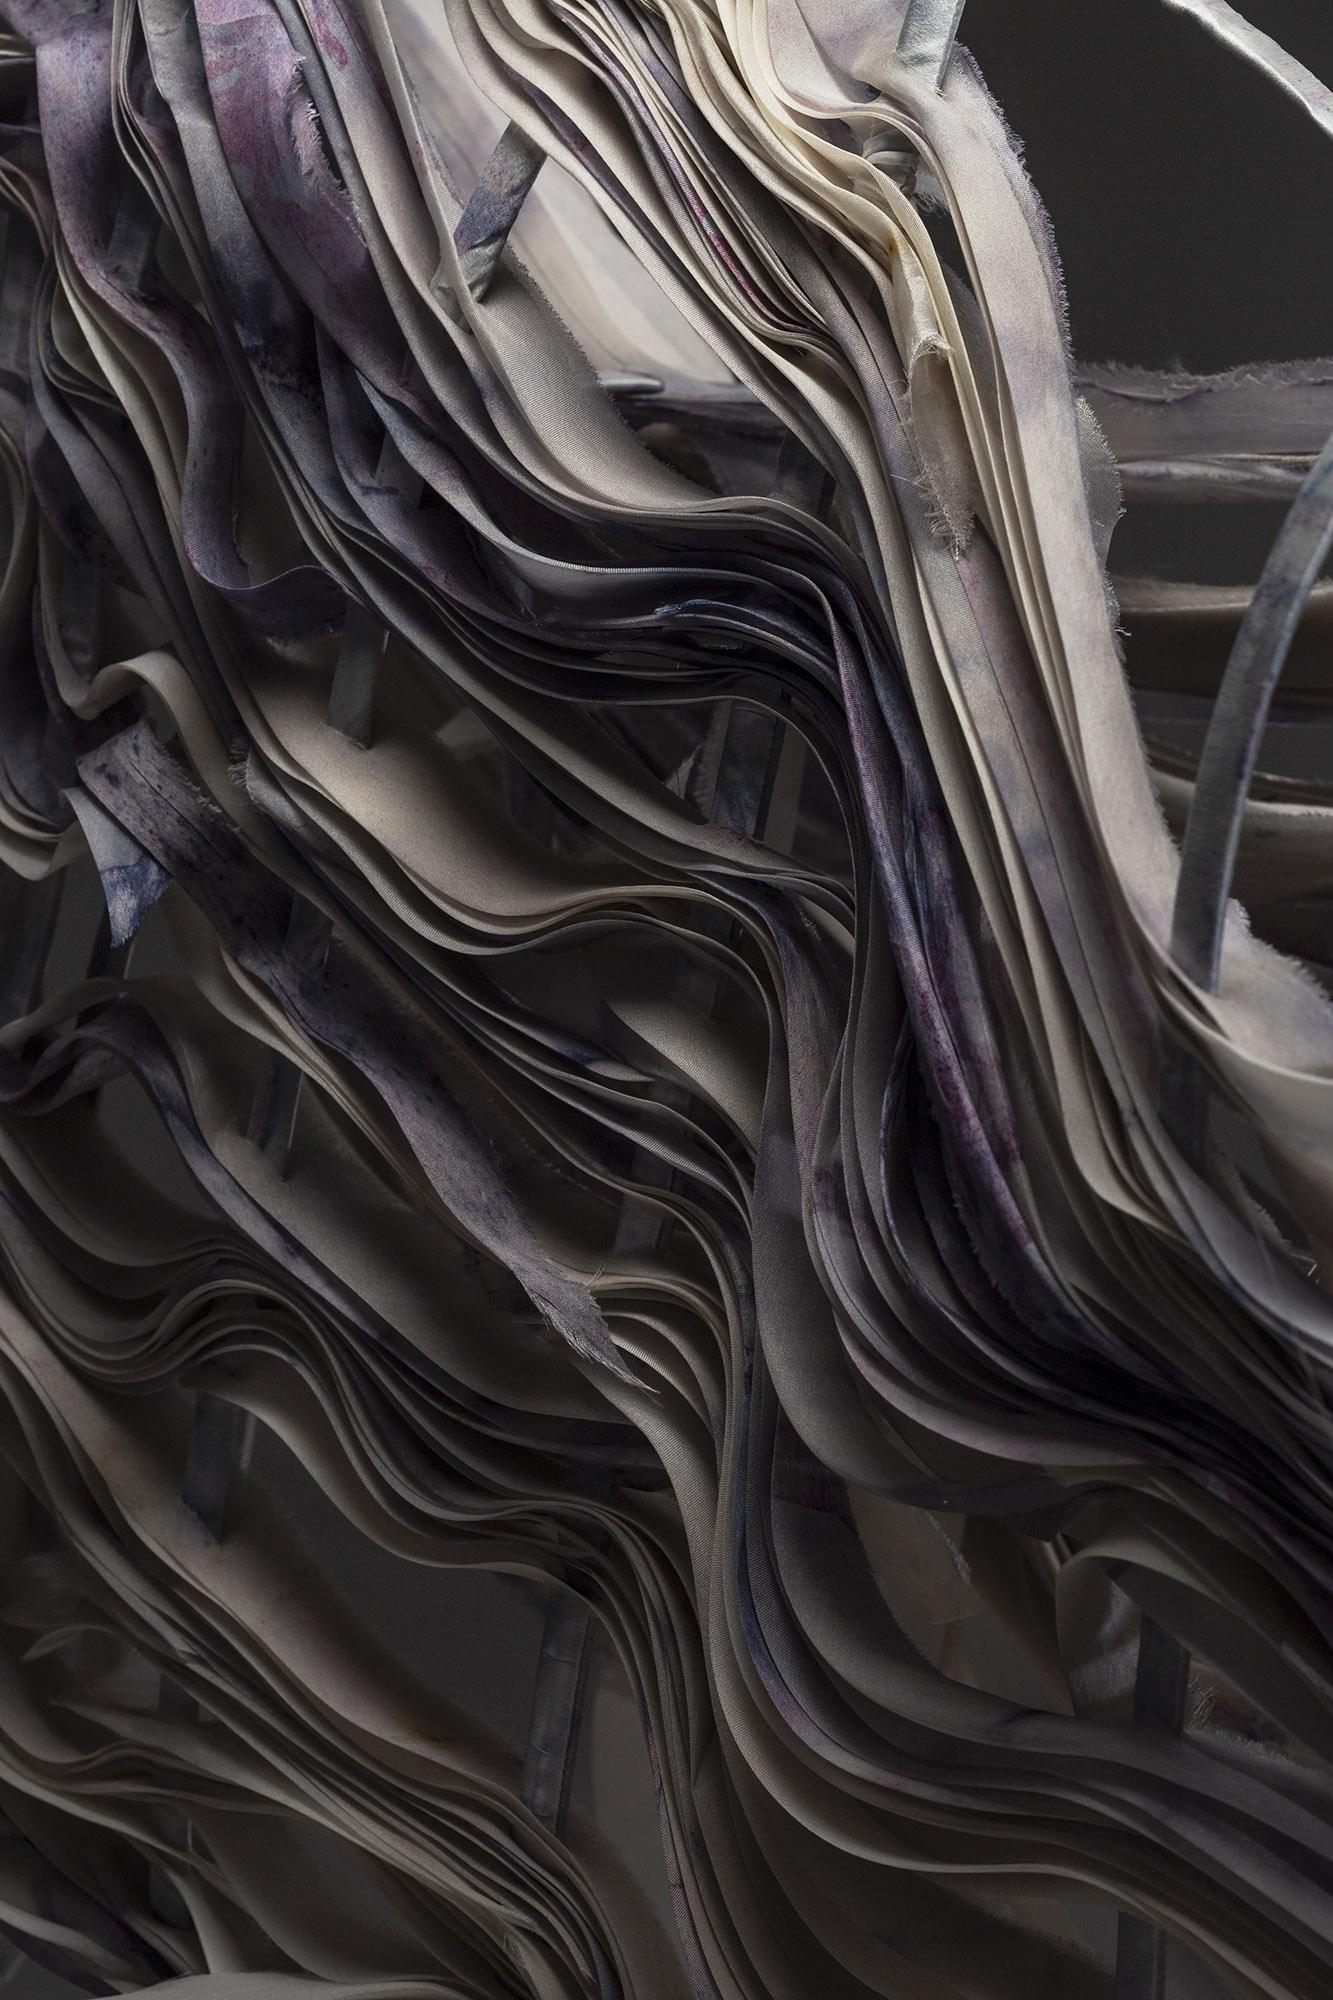 A pile of silk pieces dyed in purple with Streptomyces Coelicolor